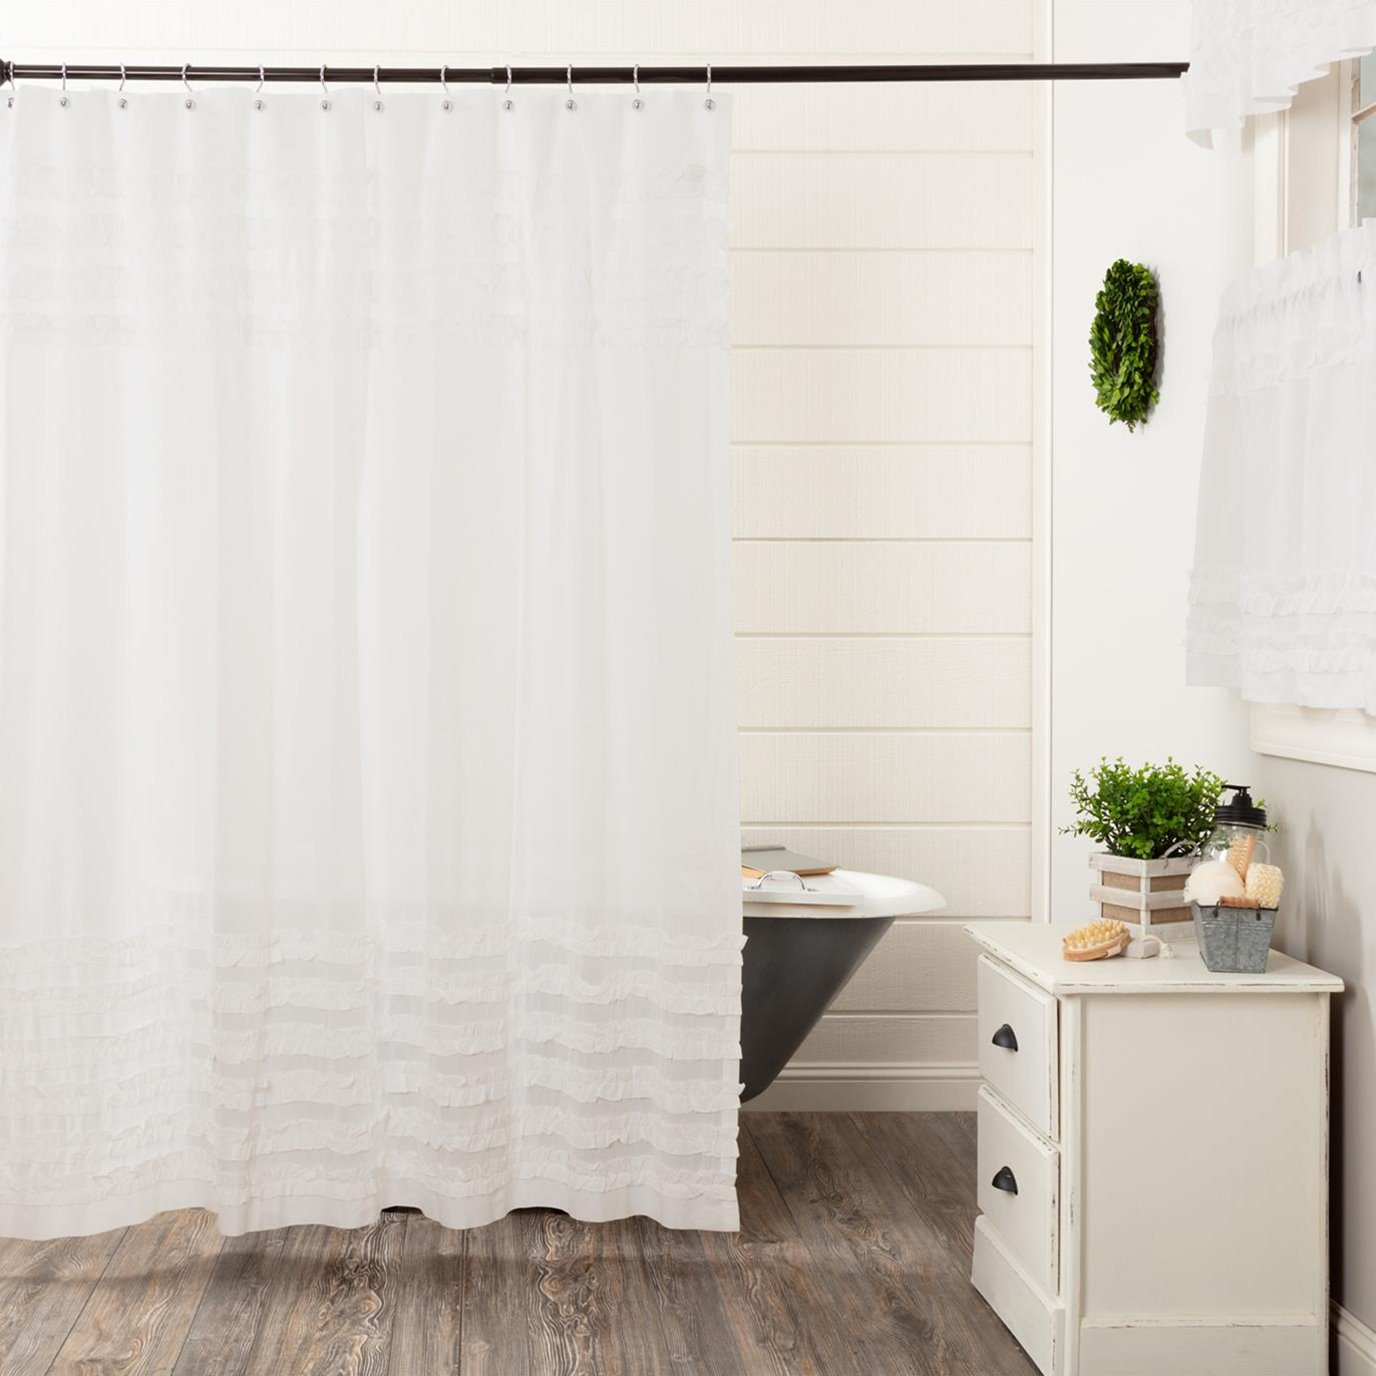 White Ruffled Sheer Petticoat Shower Curtain 72x72 by April & Olive - VHC Brands